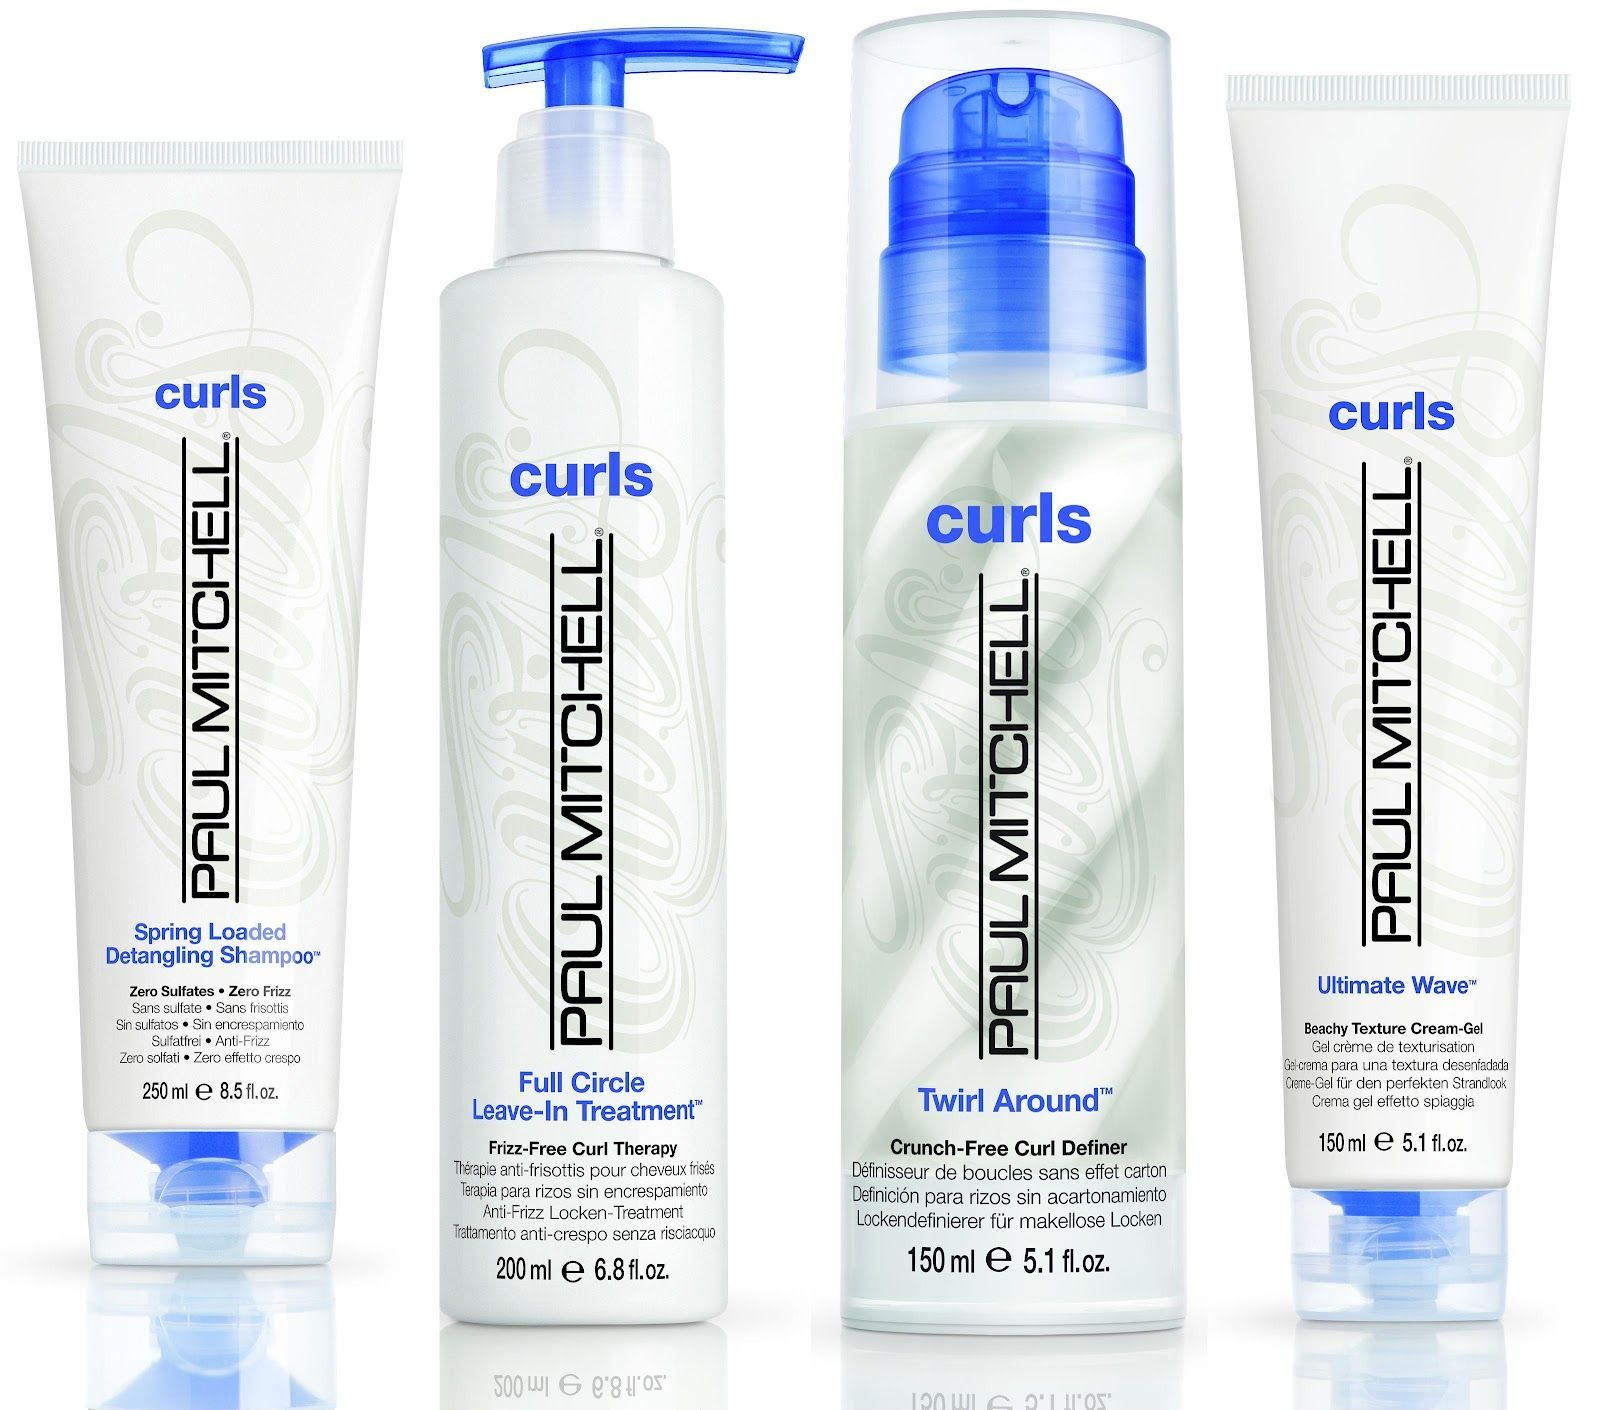 Good products for natural curly hair you can find out more